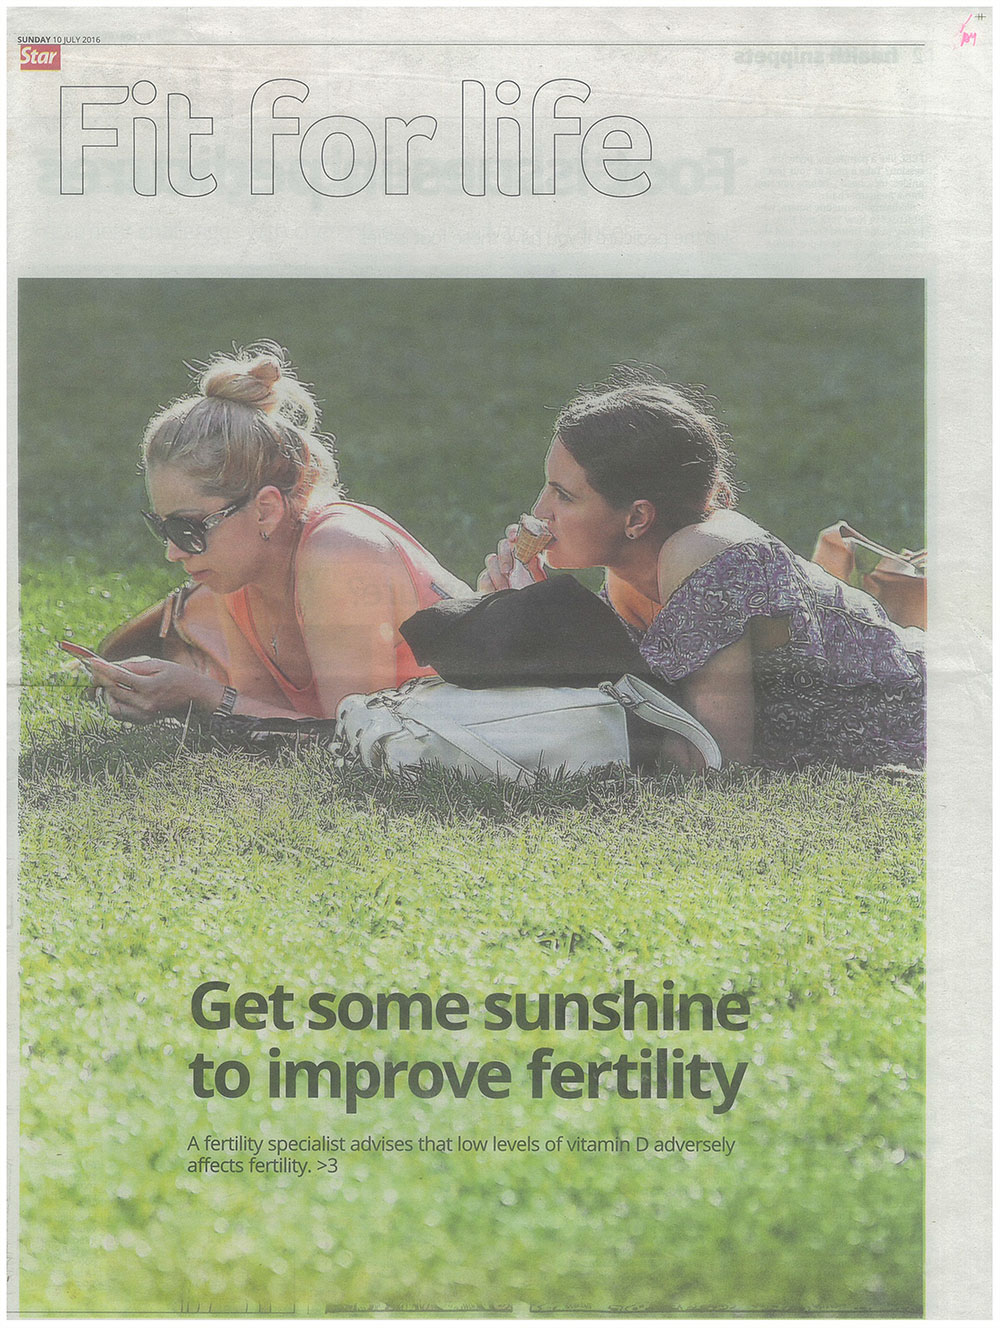 Get Some Sunshine to Improve Fertility - The Star, Fit for Life (10 July 2016) page 1